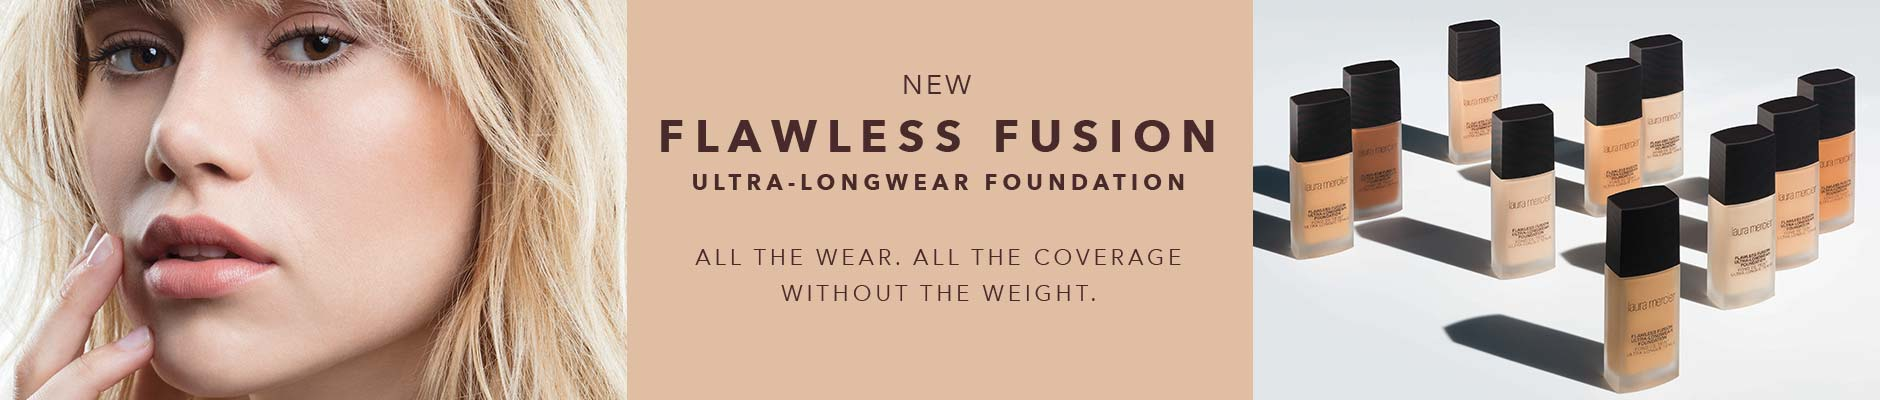 New flawless fusion, ultra-longwear foundation - All the wear, all the coverage, without the weight.